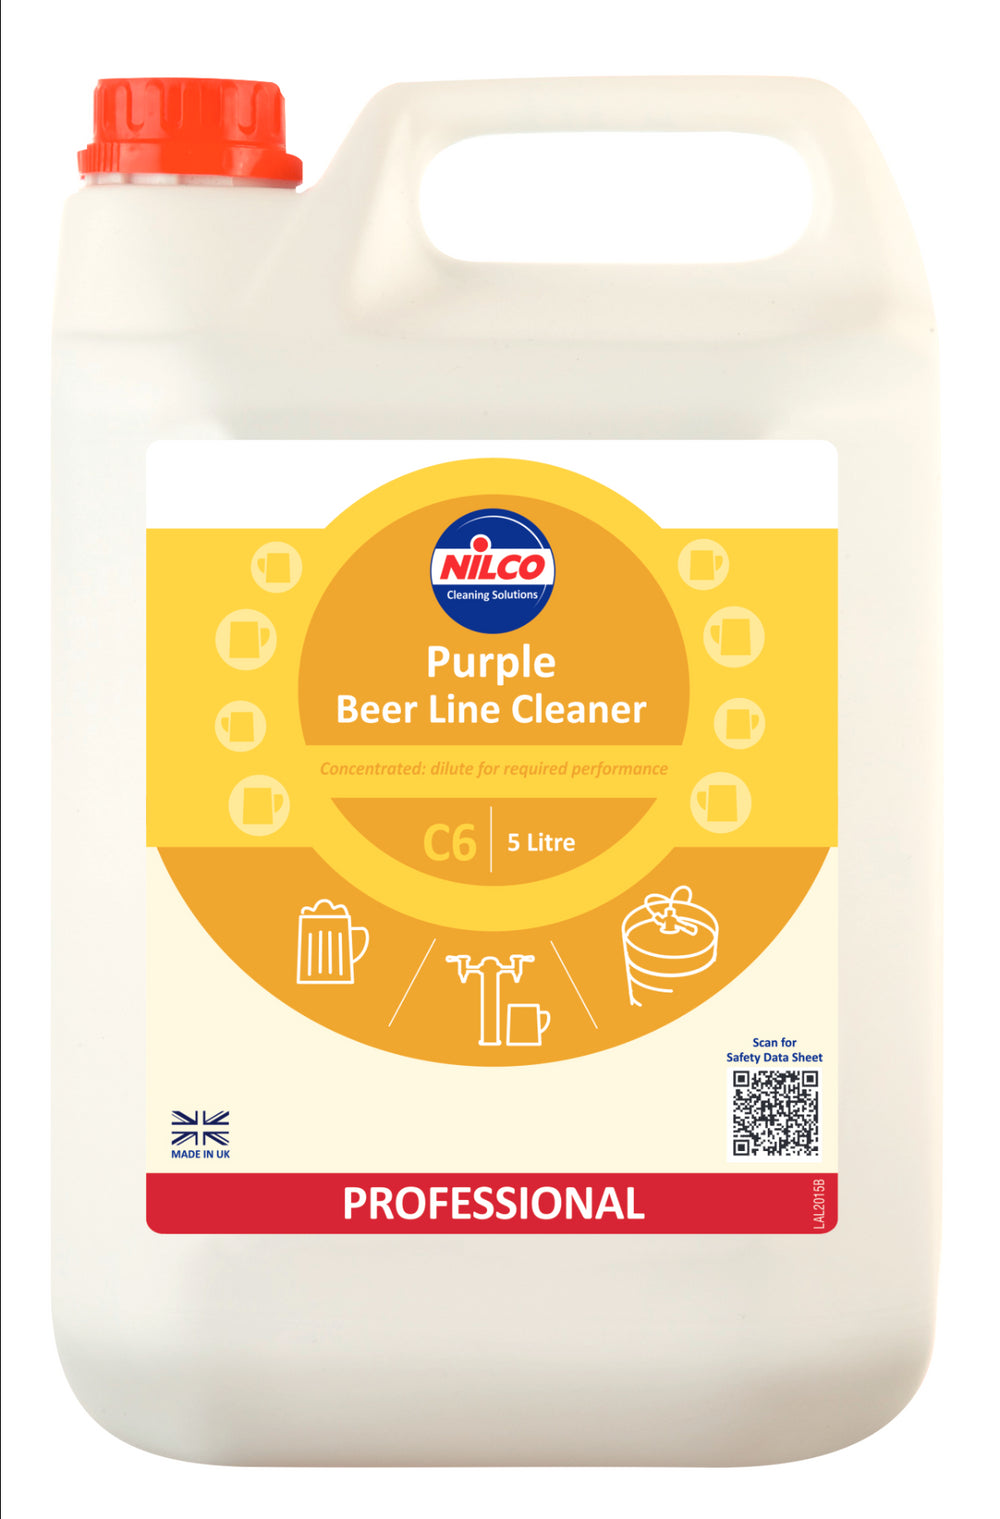 Nilco C6 Purple Beer Line Cleaner 5L